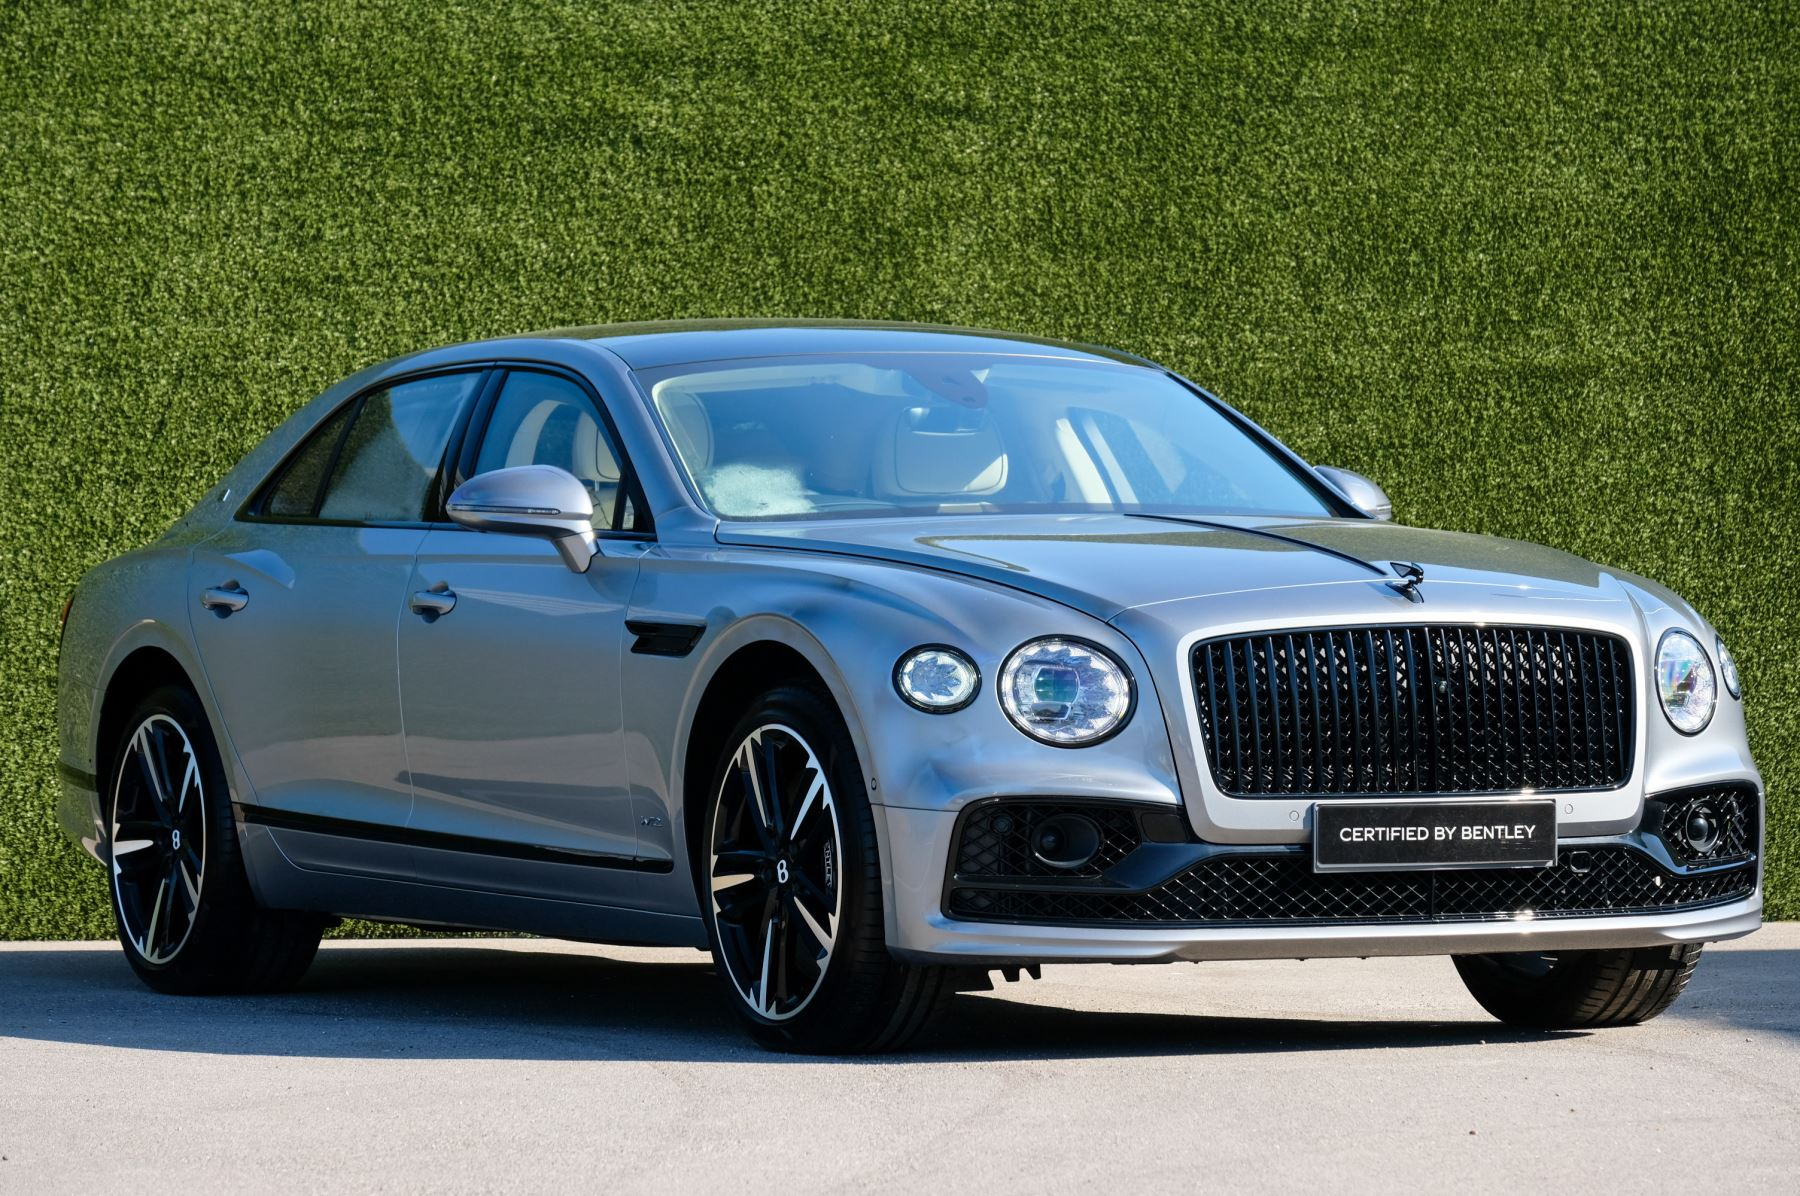 Bentley Flying Spur 6.0 W12 4dr Automatic Saloon